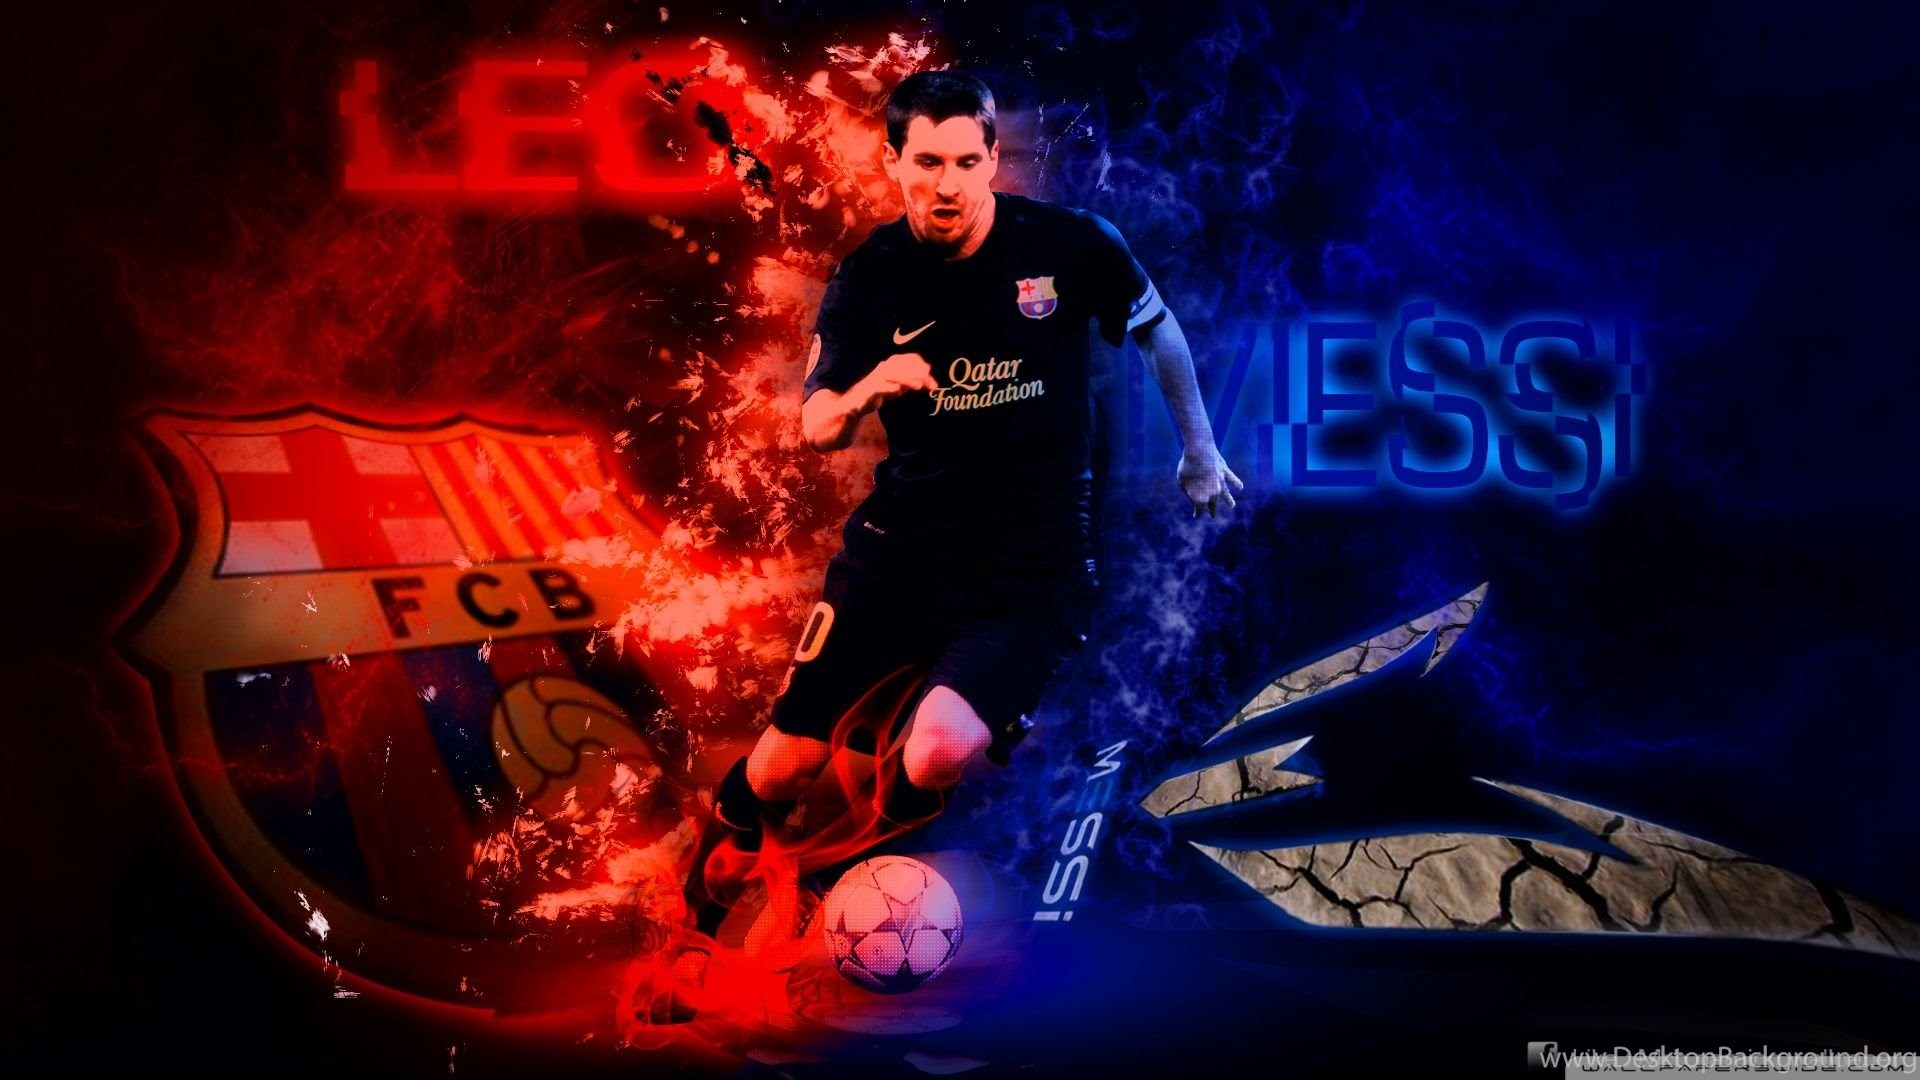 Lionel Messi Barcelona Wallpapers Desktop Backgrounds Desktop